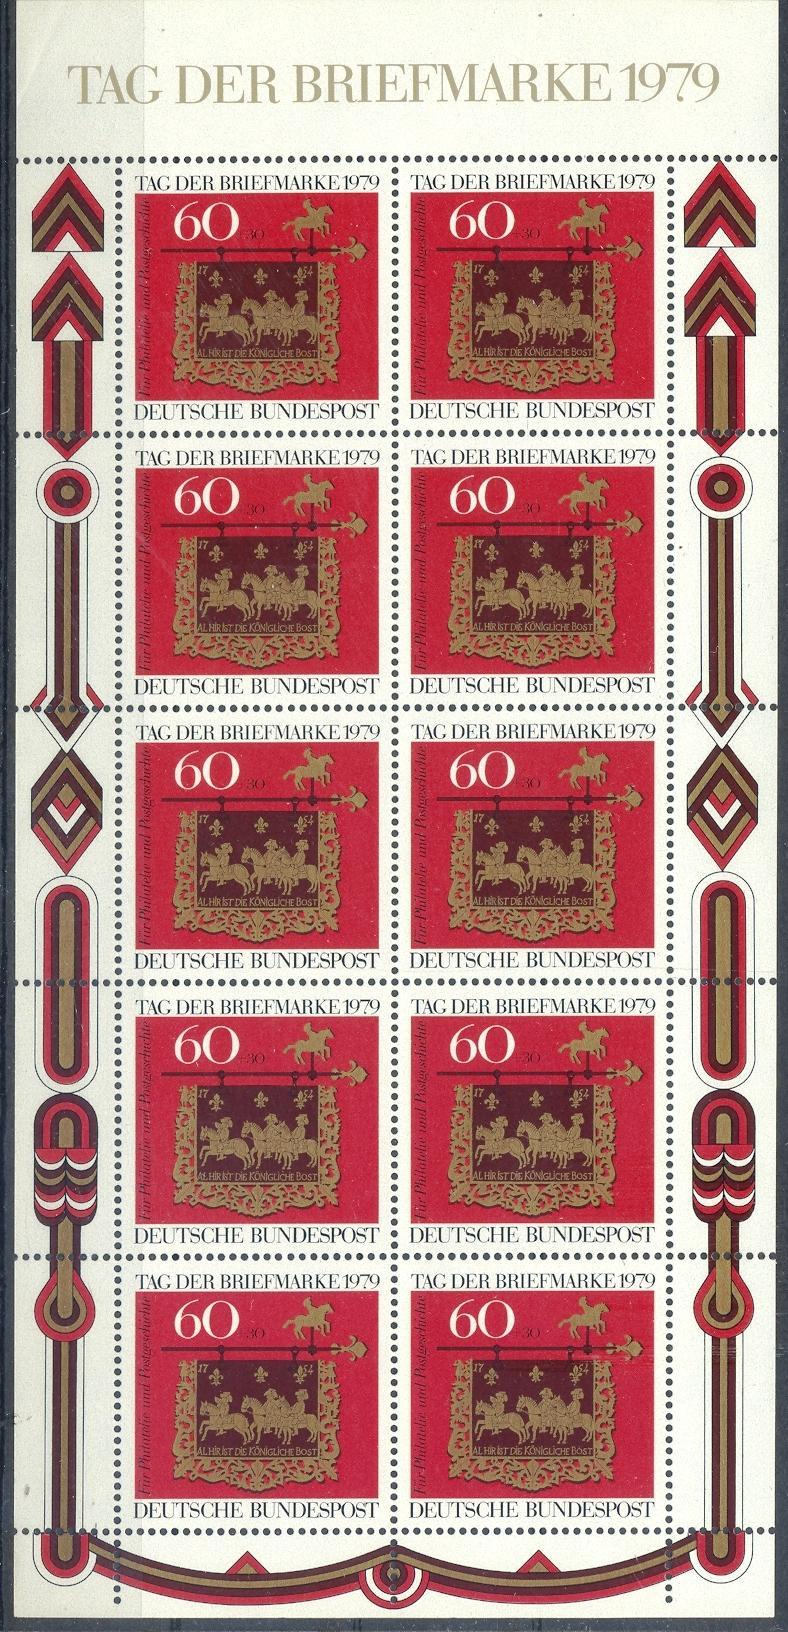 Stamps with Coat of Arms from Germany (image for product #058202)